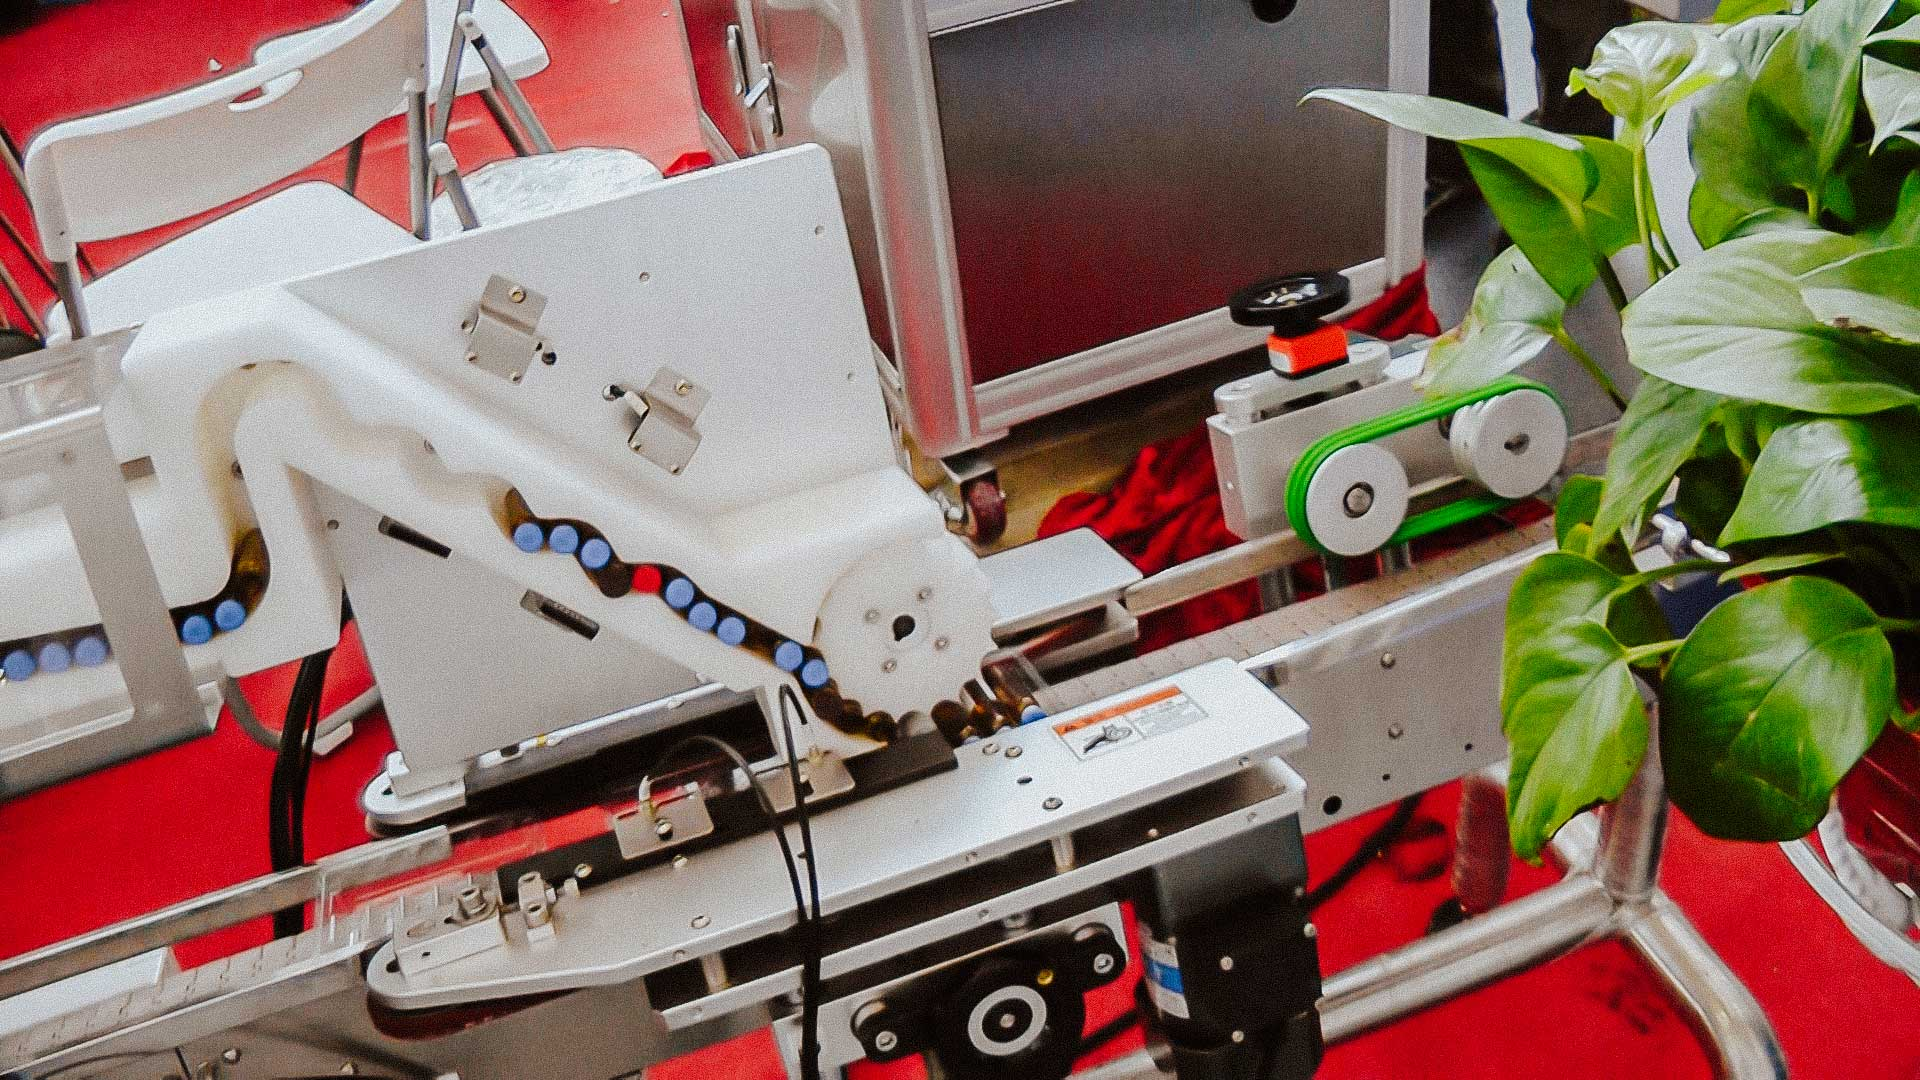 Automatic labeling equipment for labelling self-adhesive labels on glass ampoules and vials